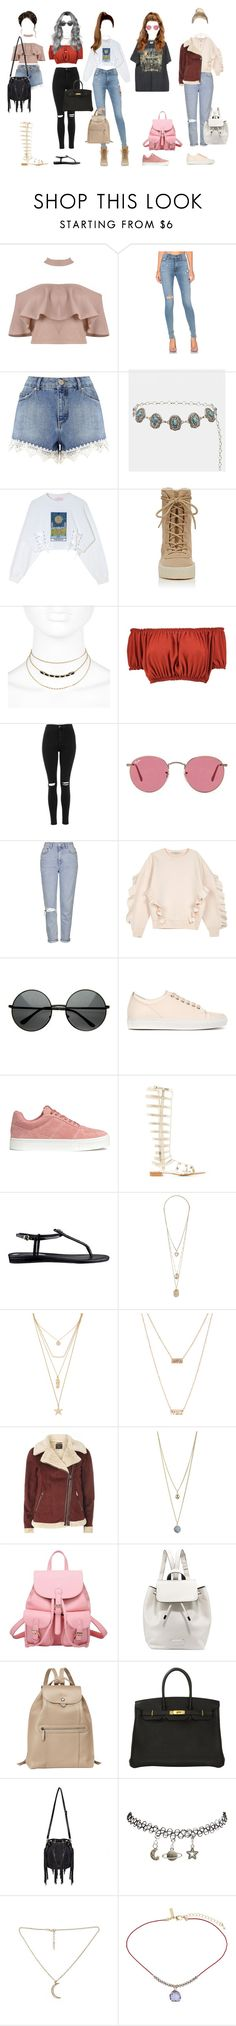 """""""Untitled #379"""" by xxeucliffexx ❤ liked on Polyvore featuring Brandy Melville, Hudson Jeans, Miss Selfridge, Black & Brown London, adidas Originals, River Island, Boohoo, Topshop, Ray-Ban and STELLA McCARTNEY"""